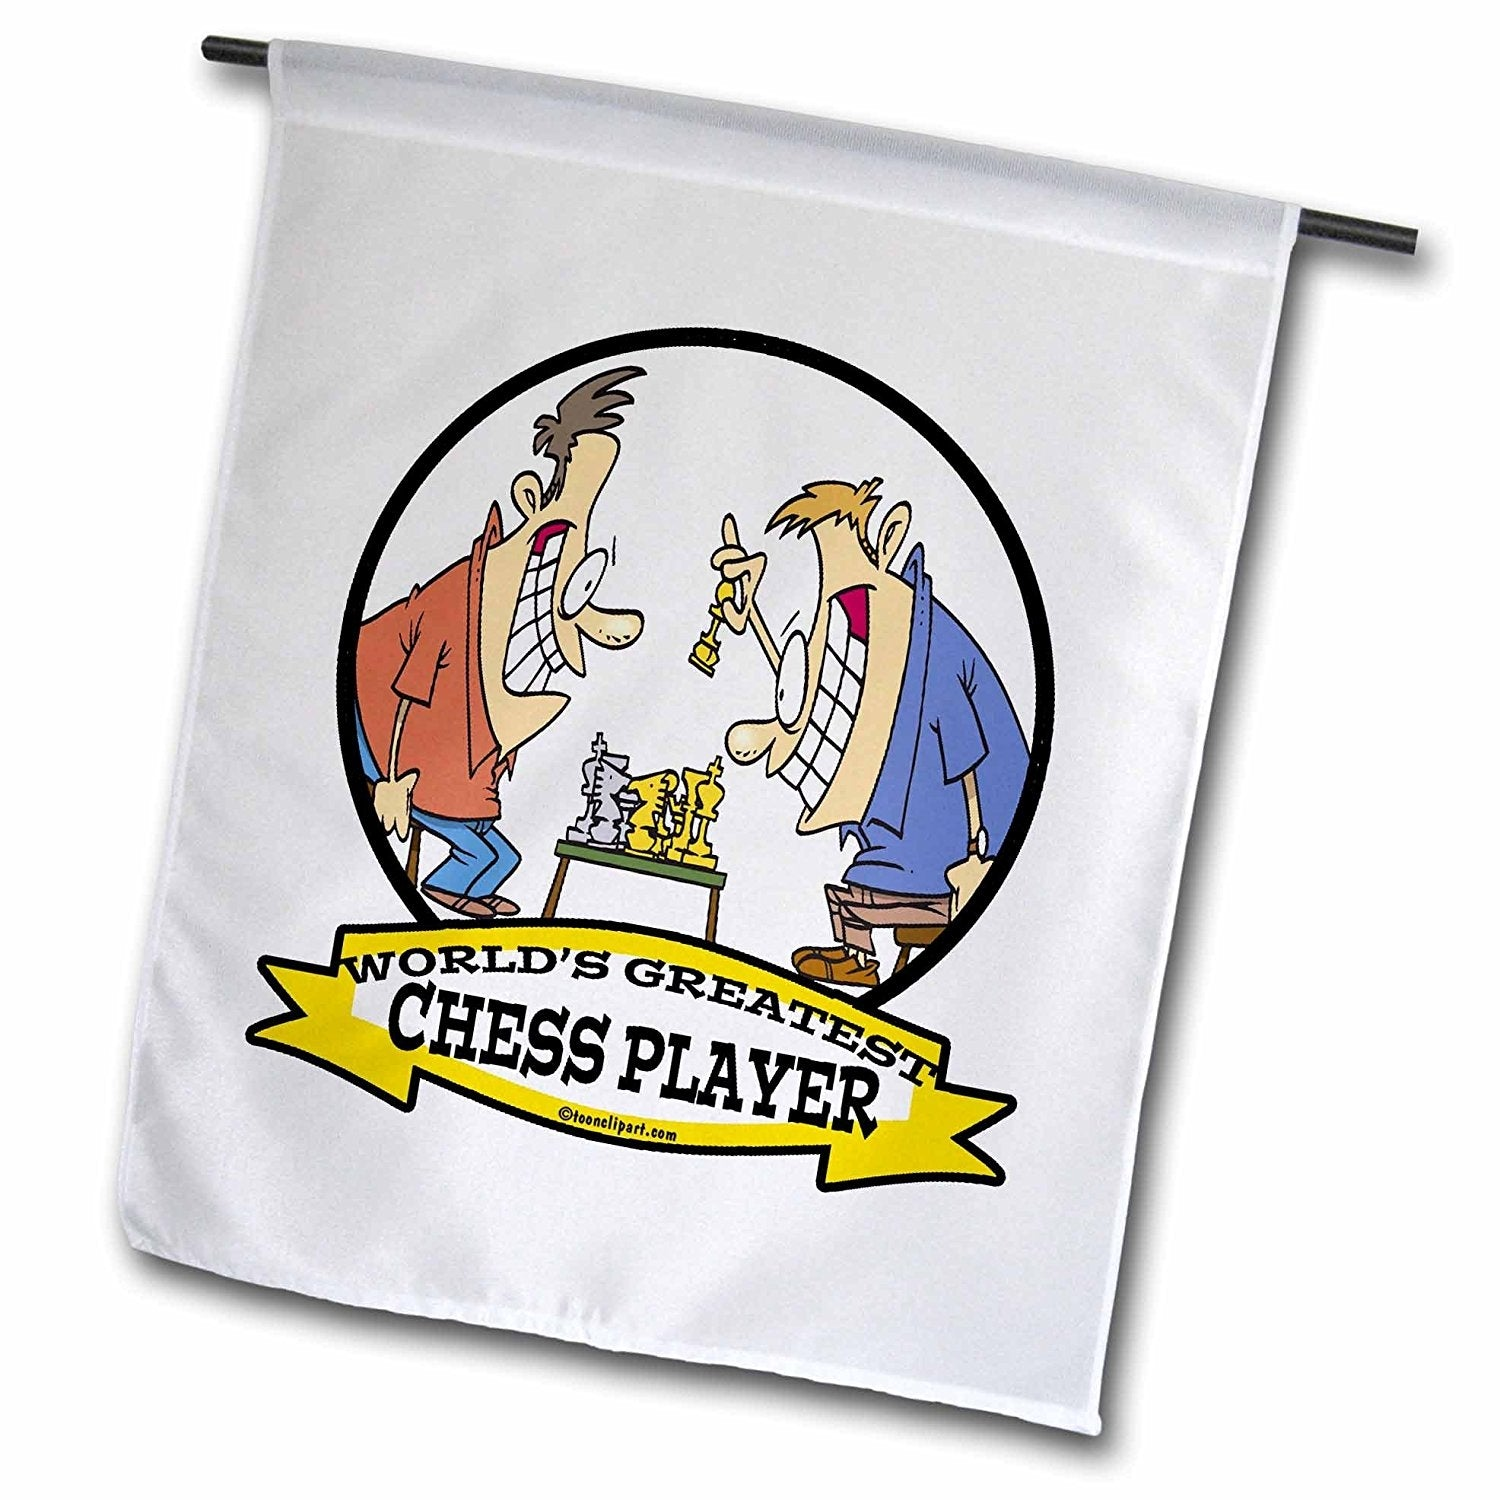 3dRose fl_103036_1 Funny Worlds Greatest Chess Player Cartoon Garden Flag, 12 by 18-Inch